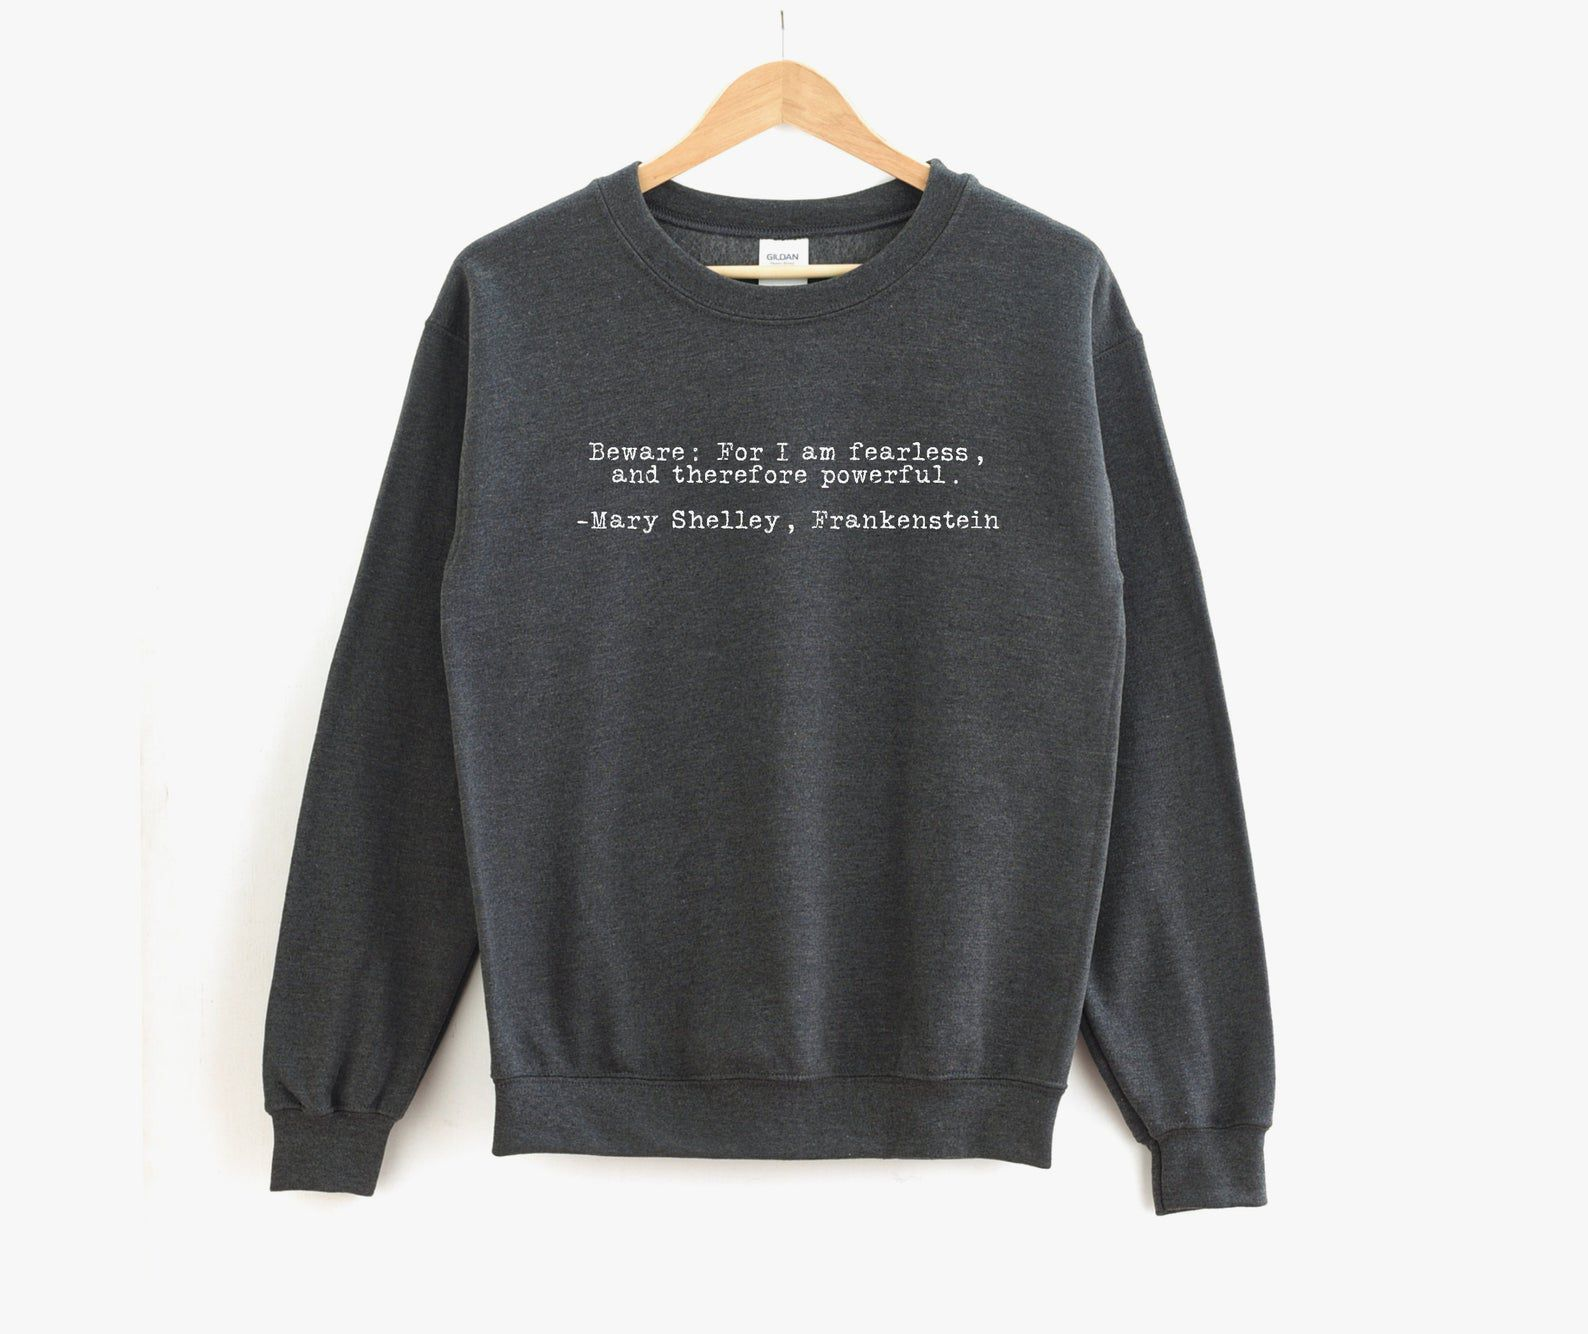 """Image of gray sweatshirt featuring Mary Shelley's Frankenstein quote """"Beware; for I am fearless, and therefore powerful."""""""